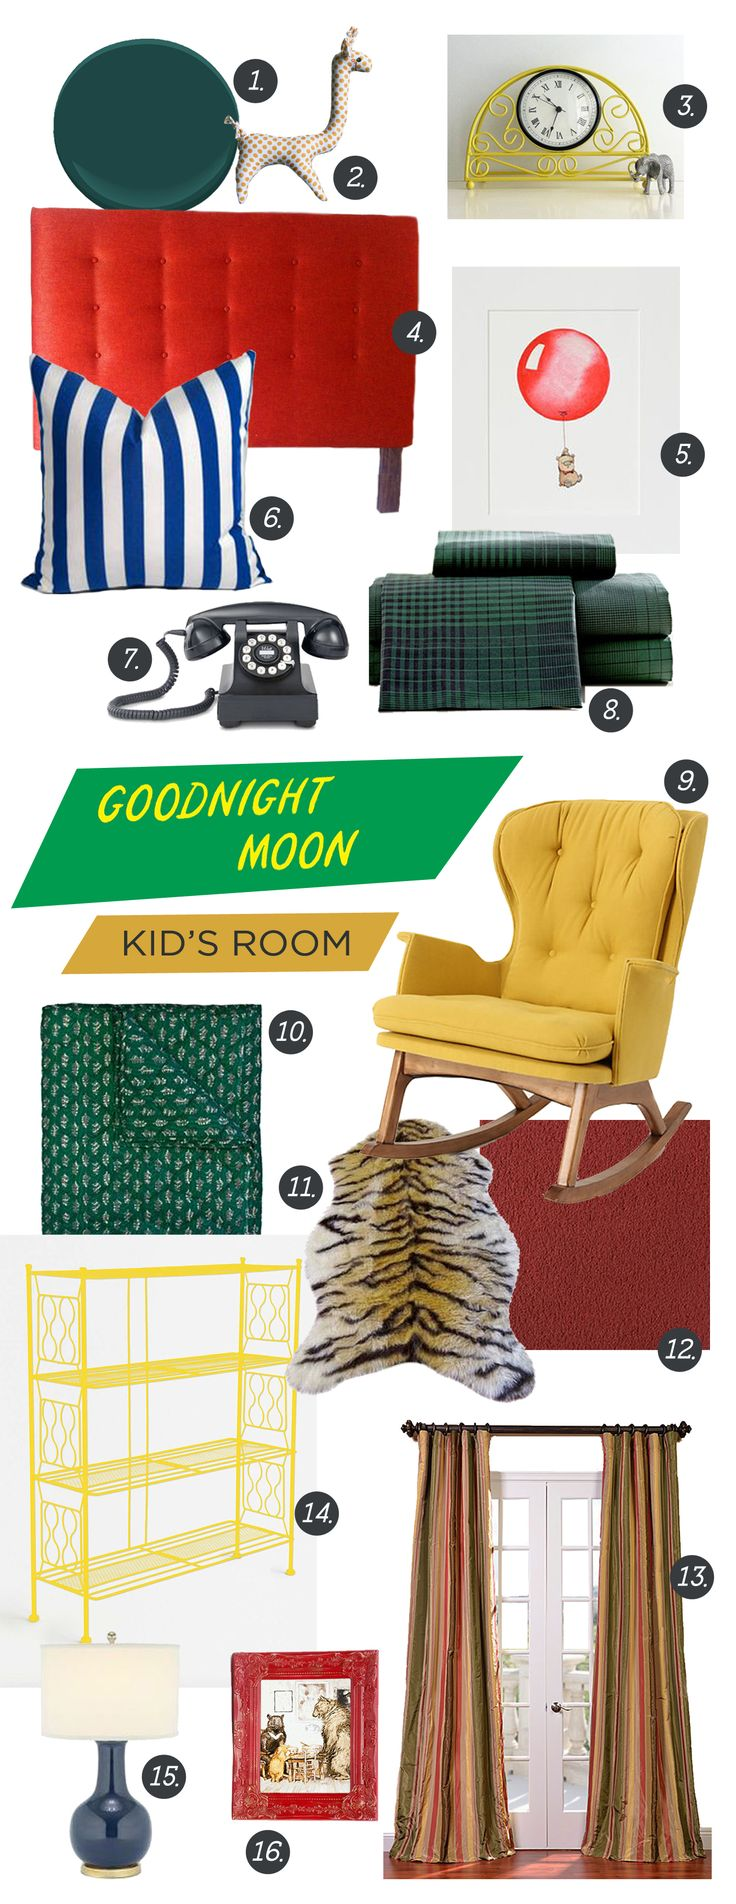 Goodnight Moon inspired Kids Room or Nursery Decor moodboard. Featuring objects inspired from the book: a red upholstered headboard, dark teal green walls, yellow rocker, blue and white stripes, giraffe, plaid sheets, animal rug, a mantel clock, a vintage telephone, red carpet, and three bears.